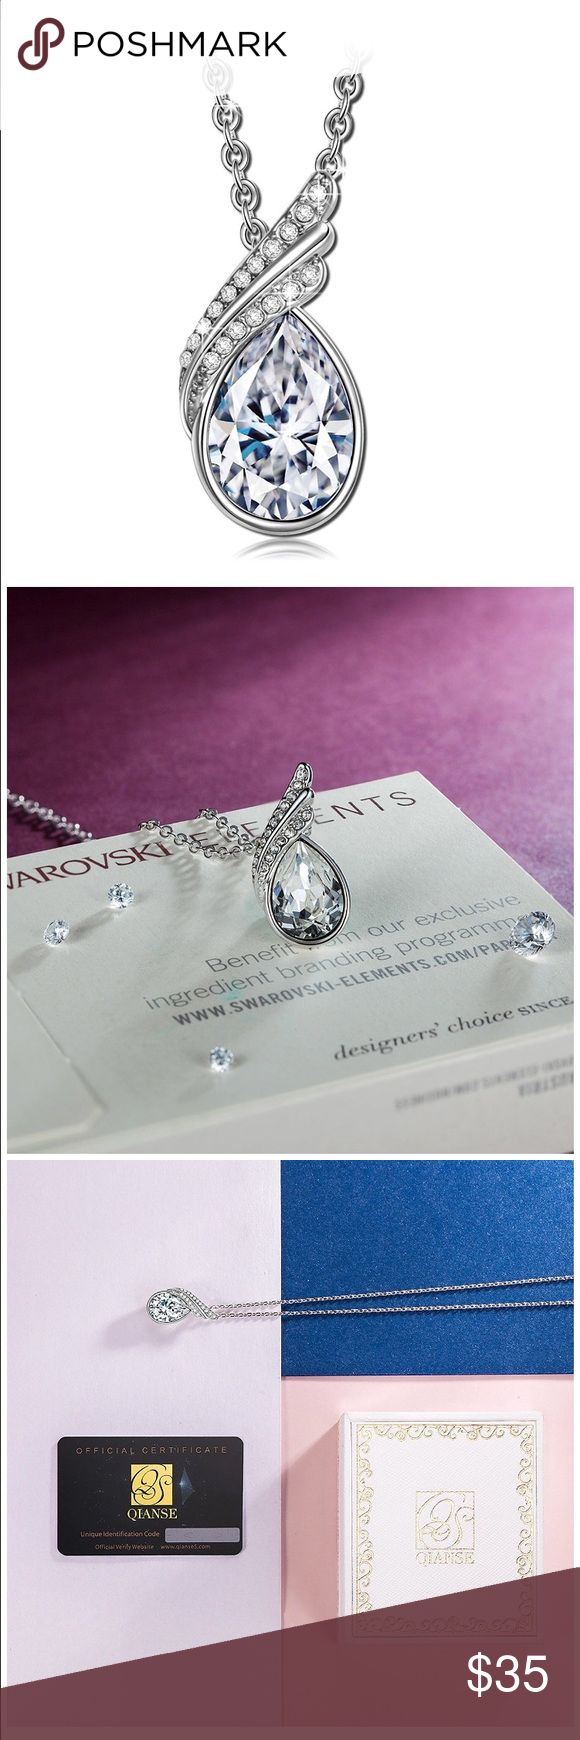 Qianse Swarovski crystal necklace w/ authenticity Beautiful necklace. Never worn. No longer have box, but do have the authenticity card and necklace Jewelry Necklaces